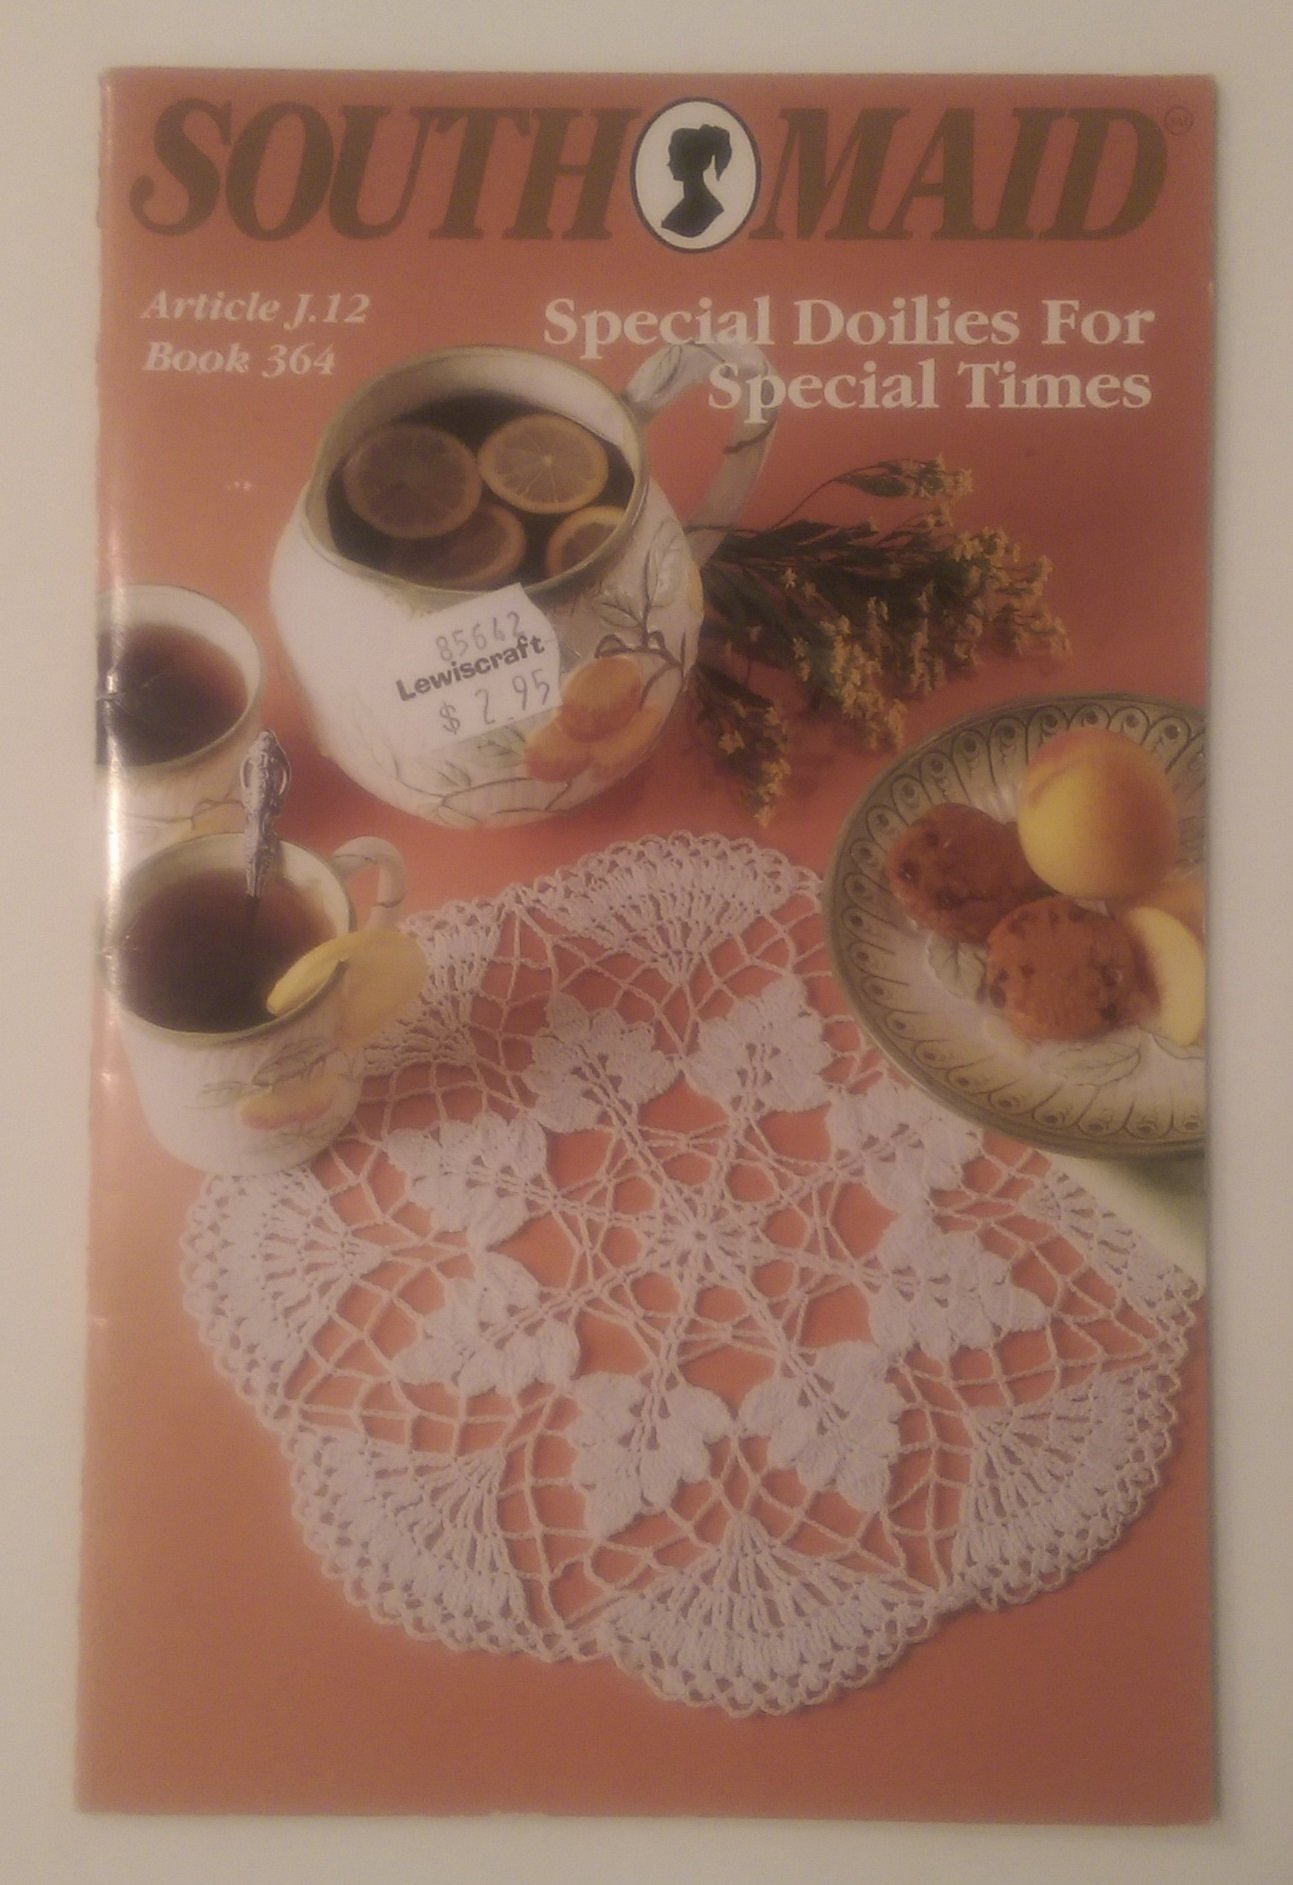 South Maid Special Doilies For Special Times Book 364 Coats Clark